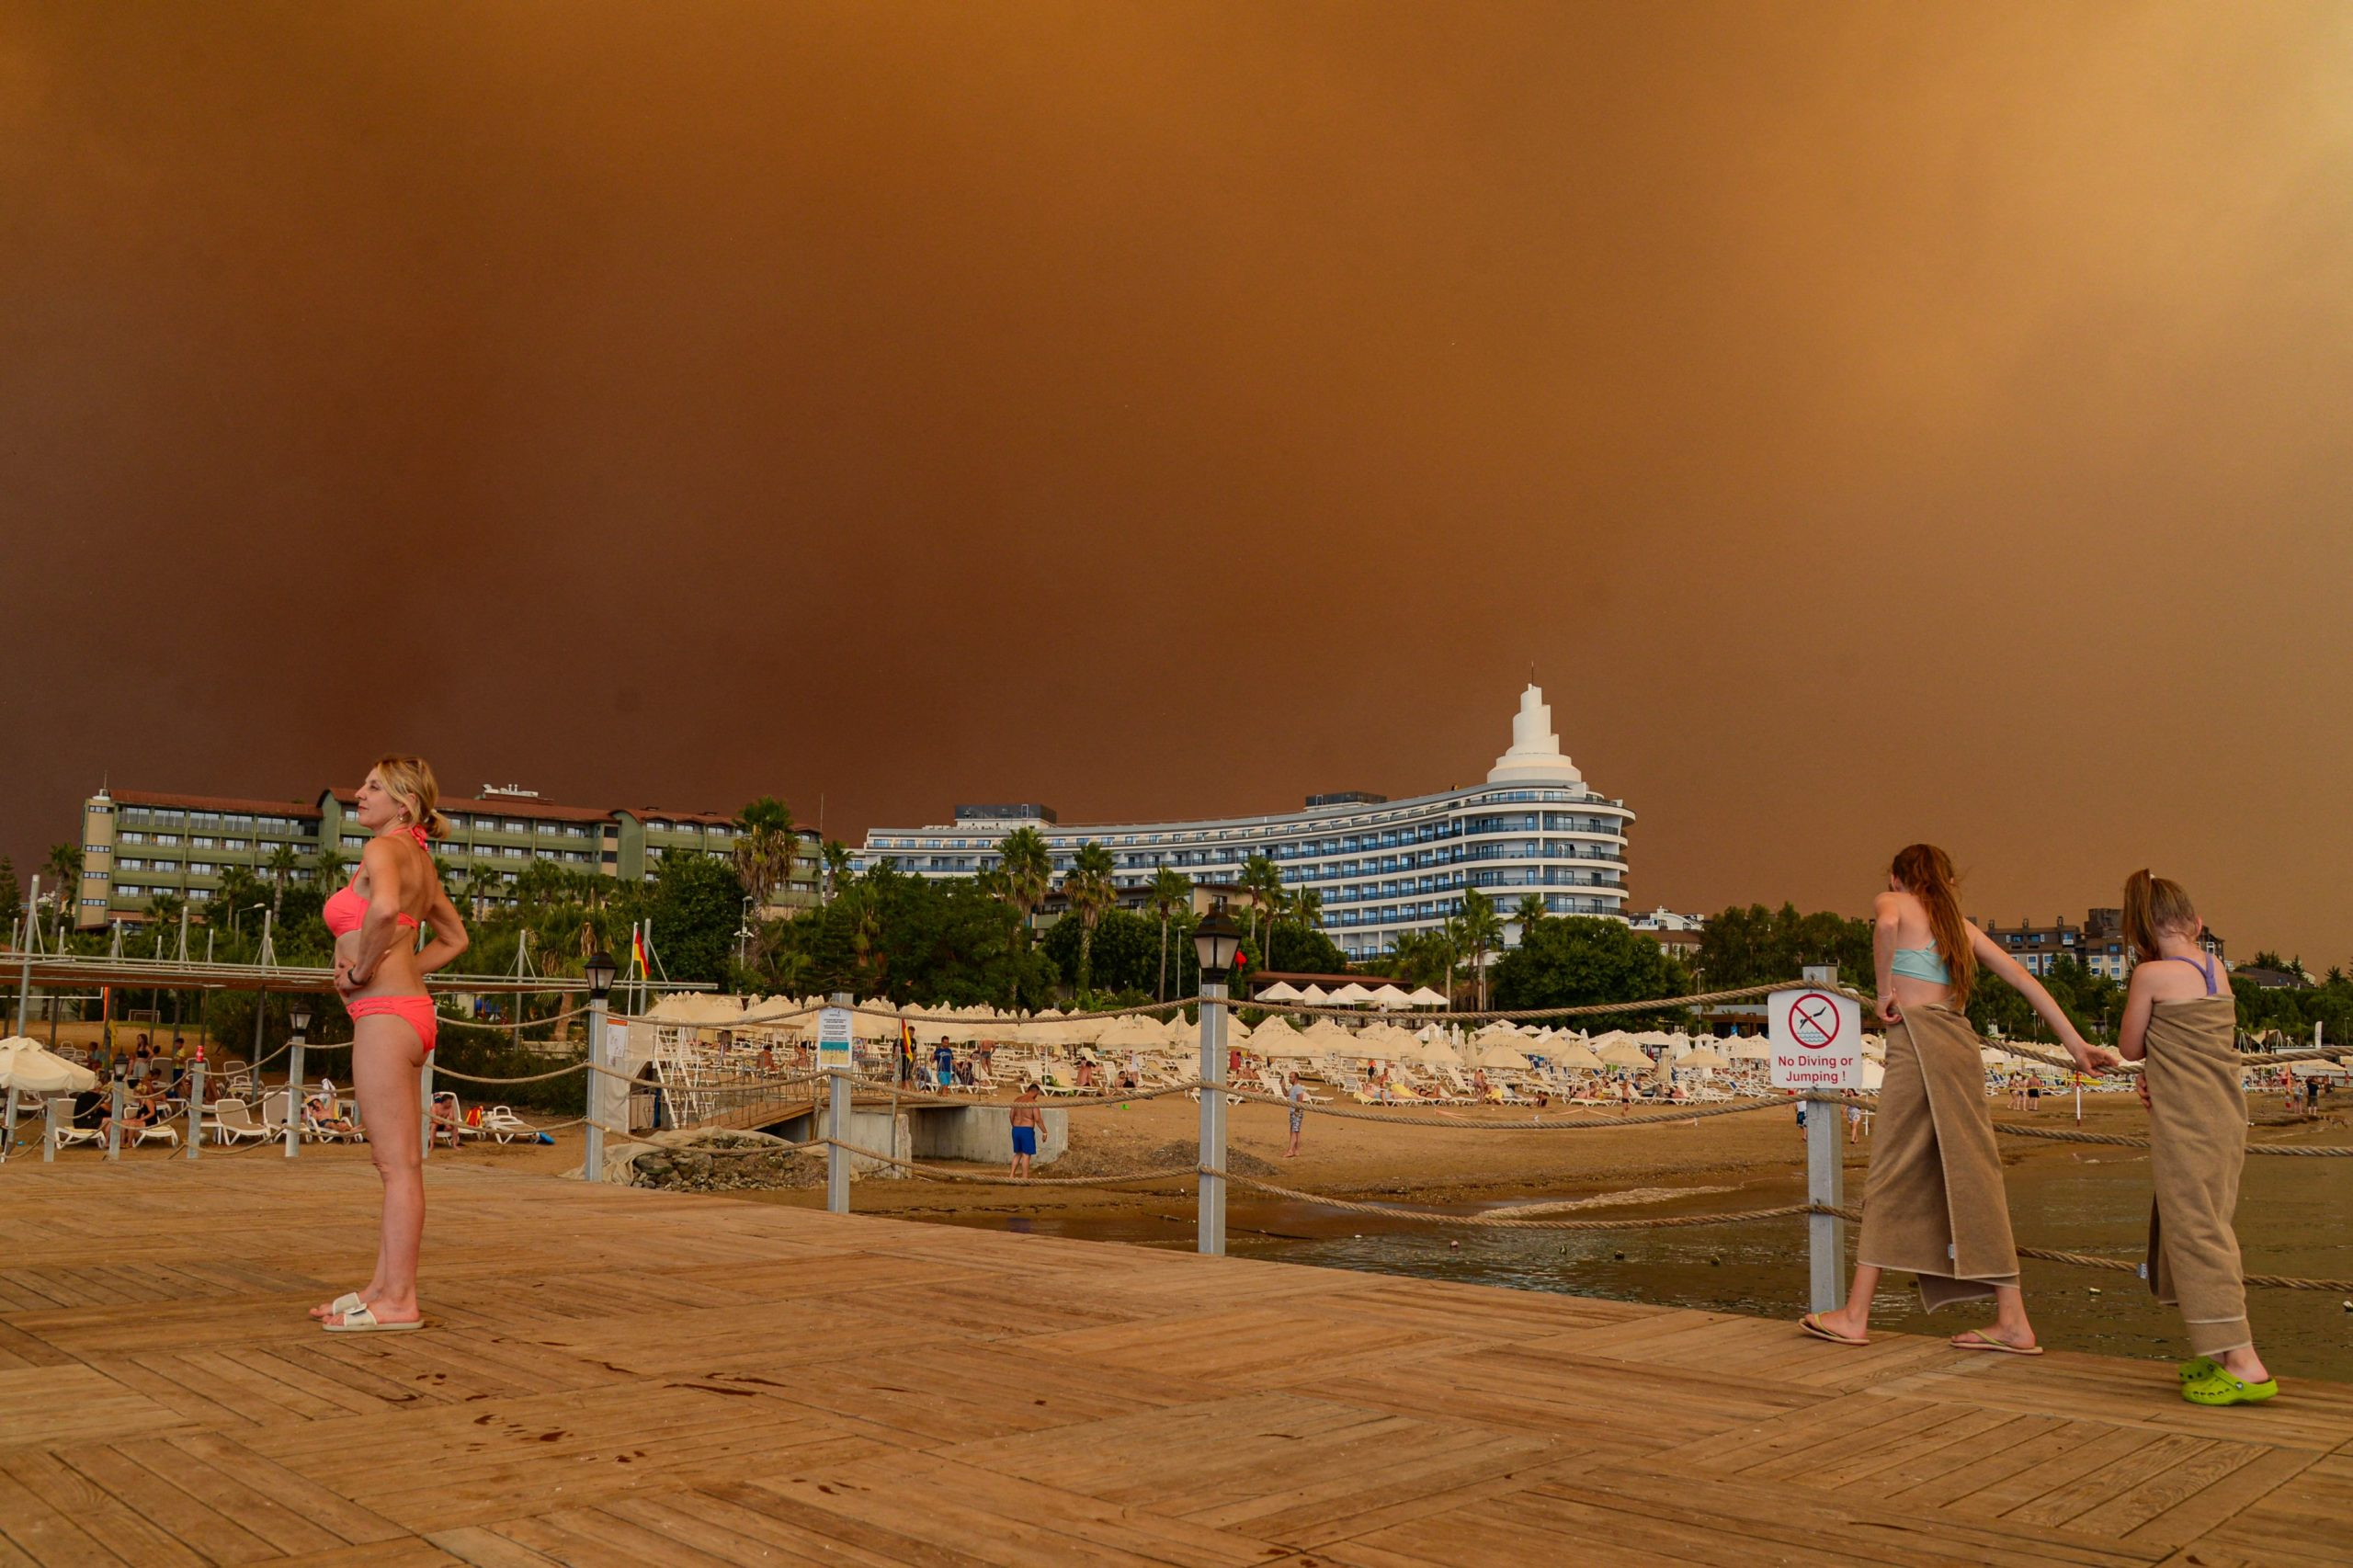 Dark smoke drifts over a hotel complex during a massive forest fire which engulfed a Mediterranean resort region on Turkey's southern coast near the town of Manavgat, on July 29, 2021. - At least three people were reported dead on July 29, 2021 and more than 100 injured as firefighters battled blazes engulfing a Mediterranean resort region on Turkey's southern coast. Officials also launched an investigation into suspicions that the fires that broke out Wednesday in four locations to the east of the tourist hotspot Antalya were the result of arson. (Photo by ILYAS AKENGIN/AFP via Getty Images)